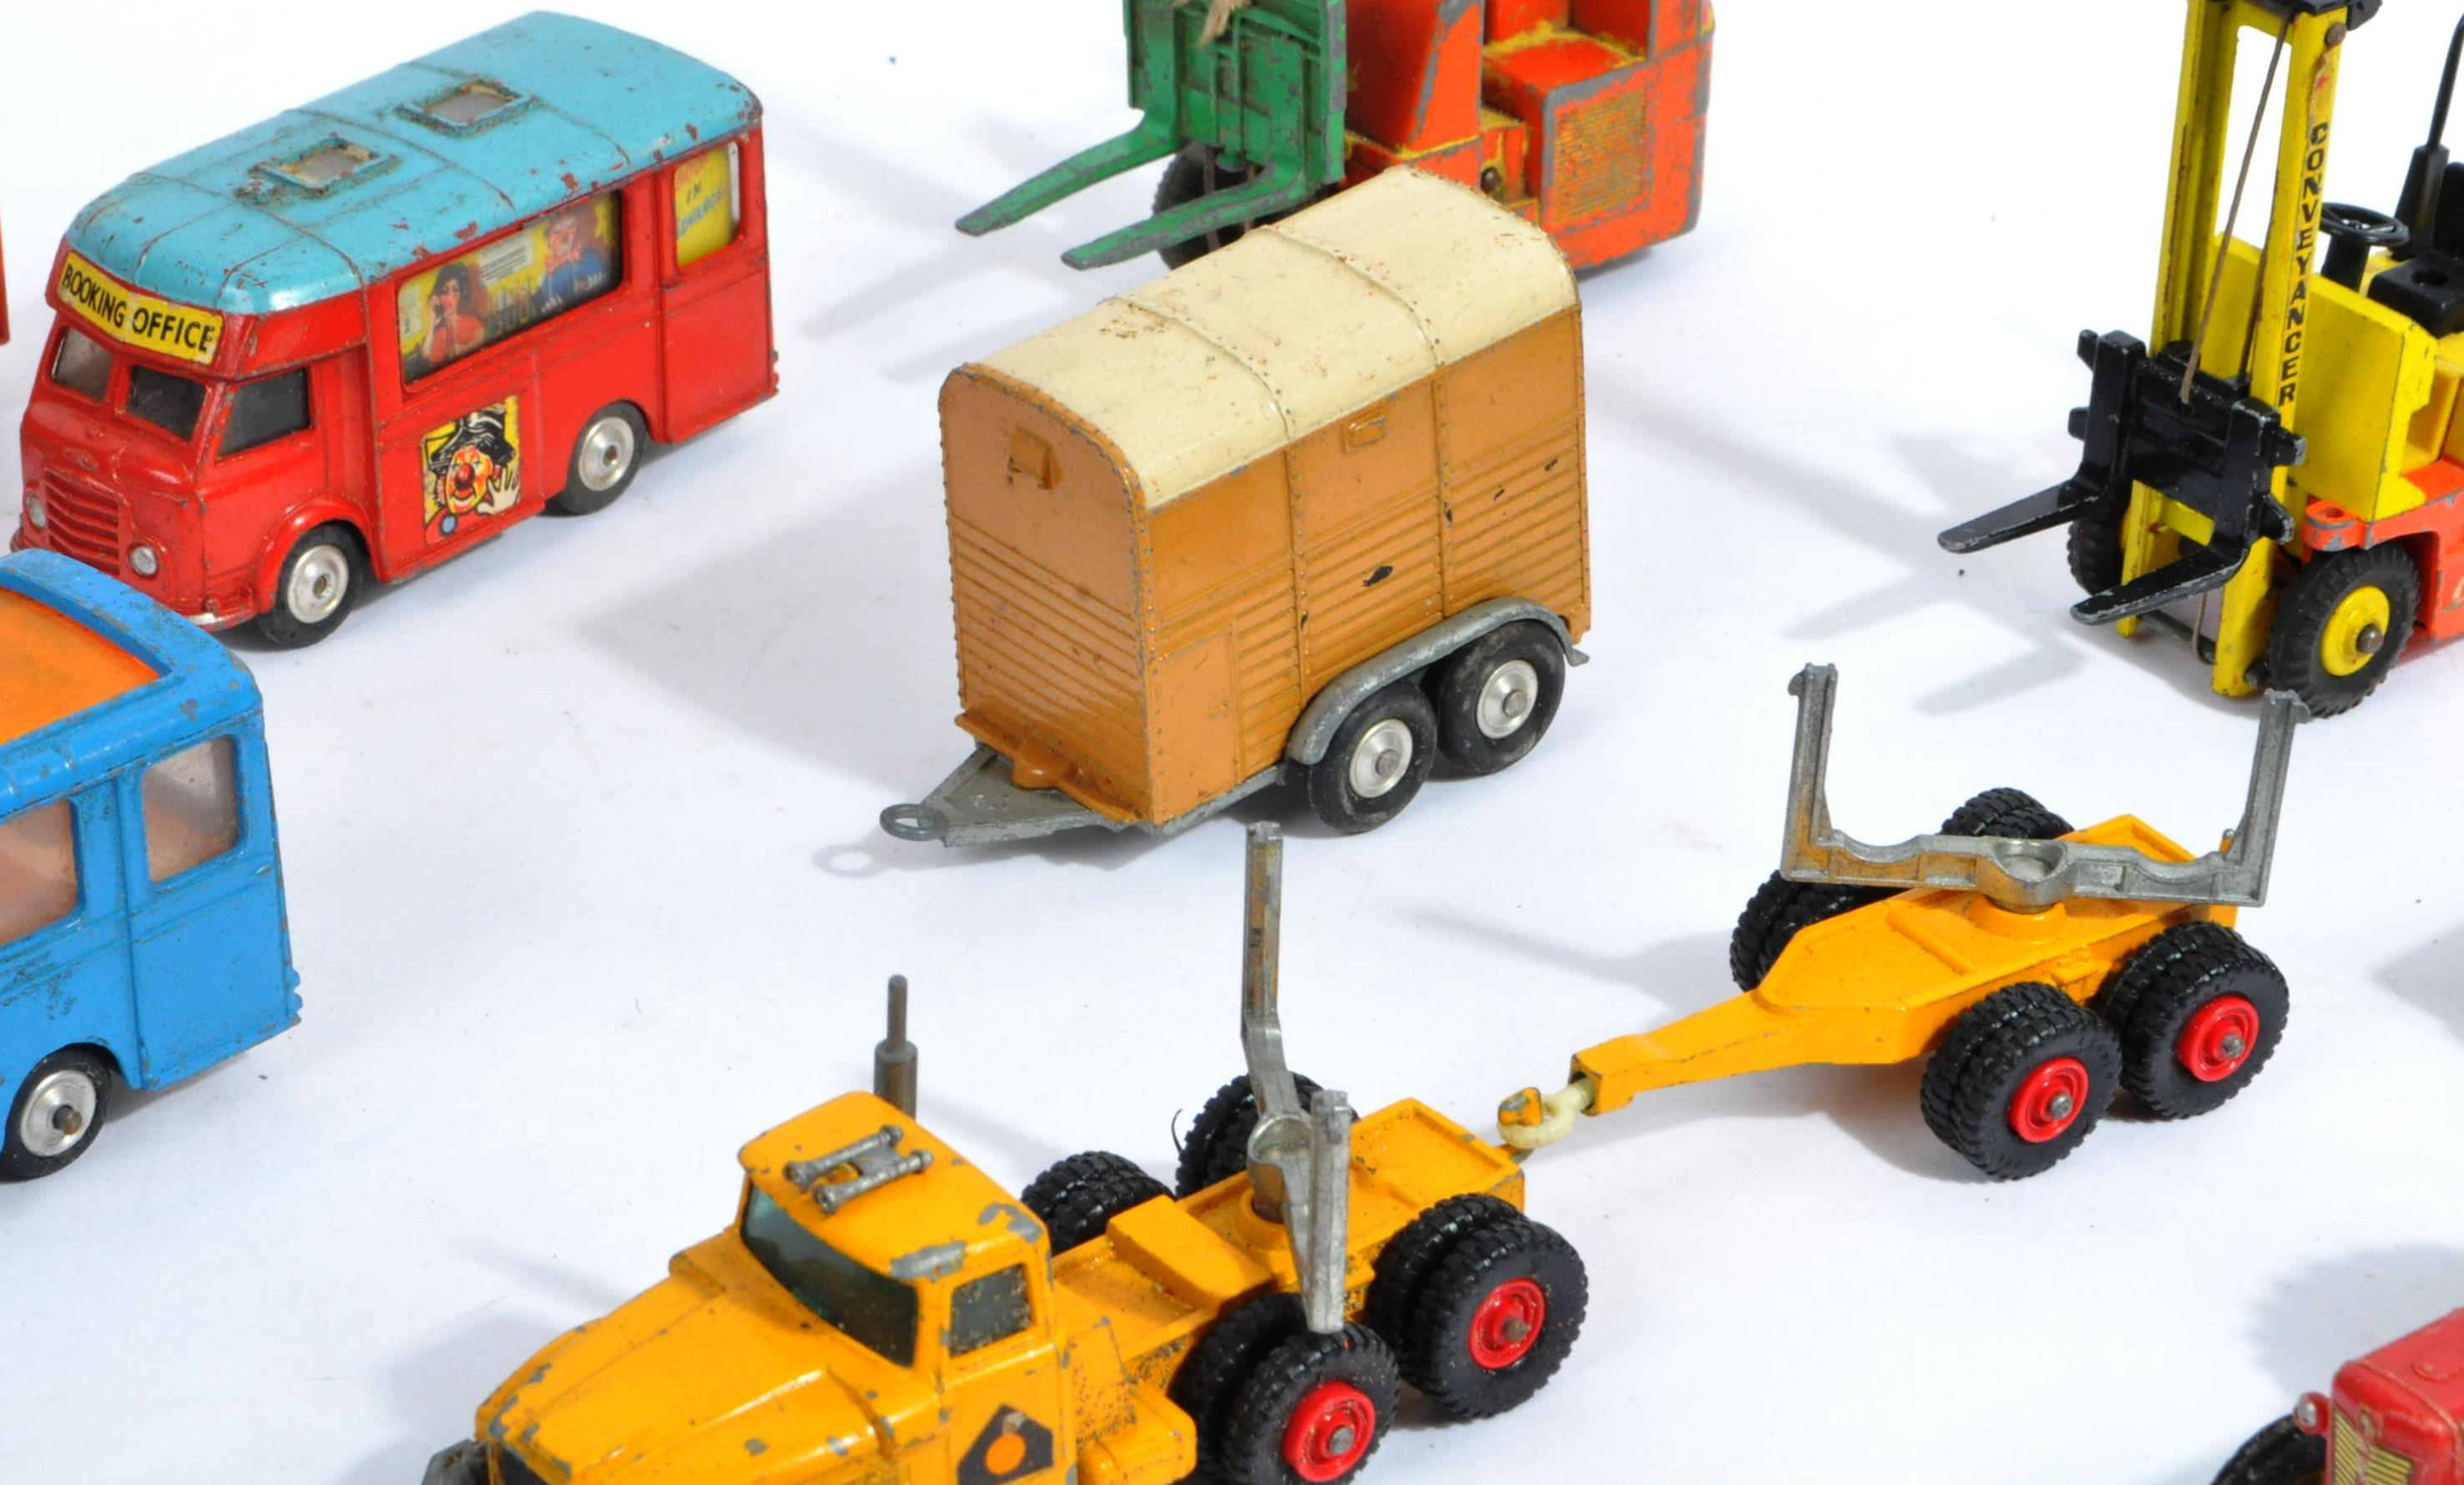 COLLECTION OF VINTAGE CORGI & DINKY TOYS DIECAST MODELS - Image 4 of 10